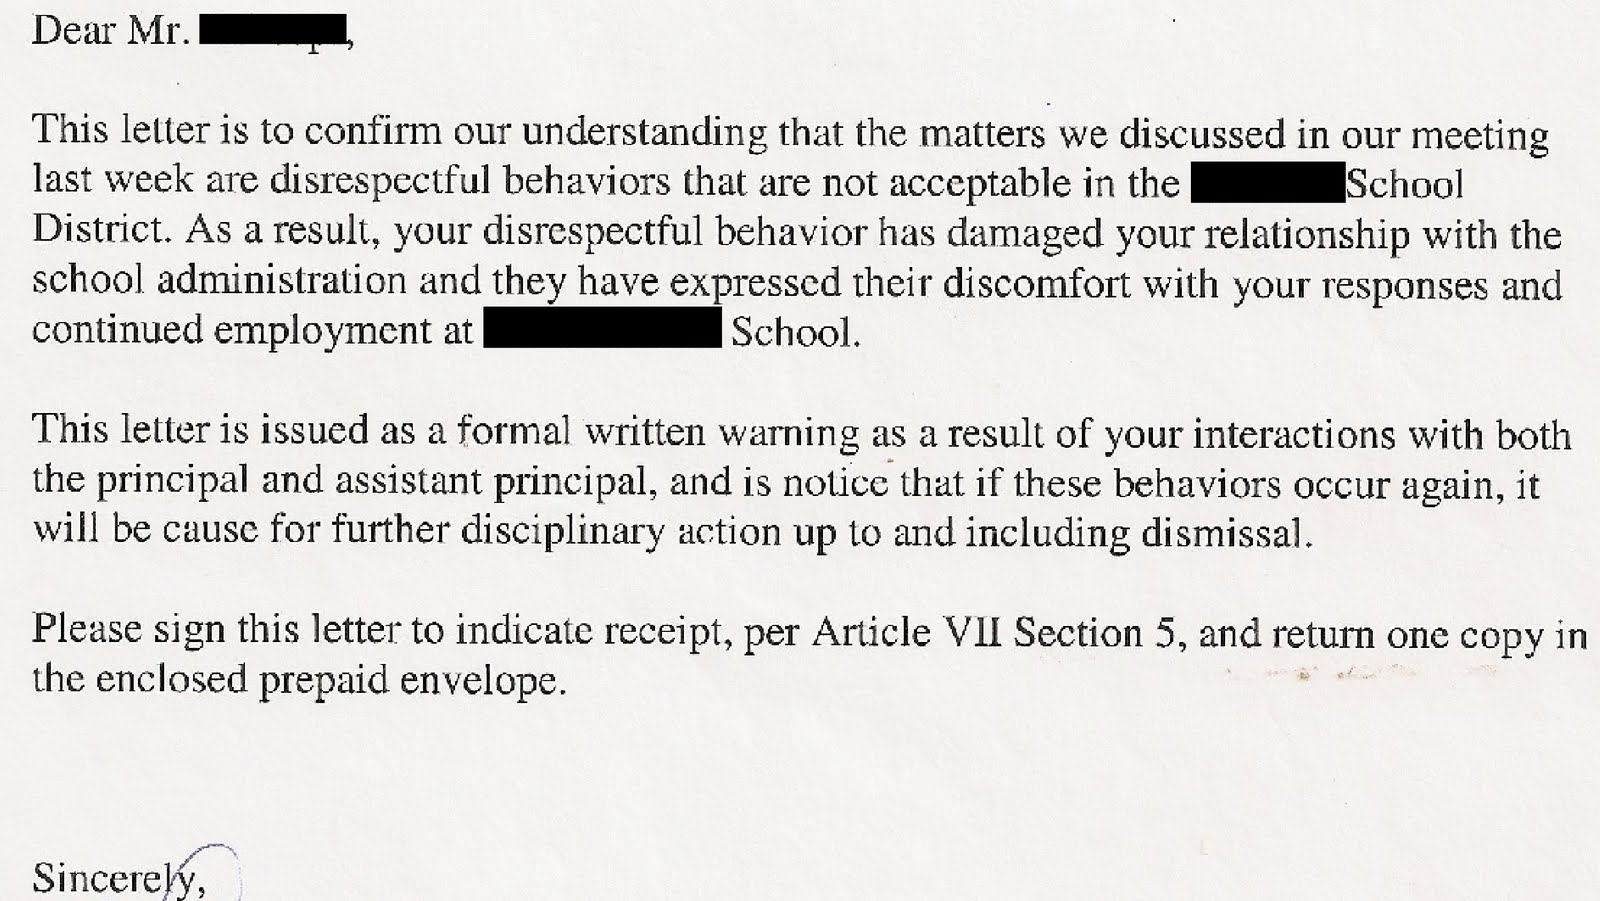 Sample Disciplinary Letter Gross Disrespect on sample disciplinary letters for performance, sample disciplinary write up letter, letter of reprimand for disrespect, sample disciplinary letter for misconduct,